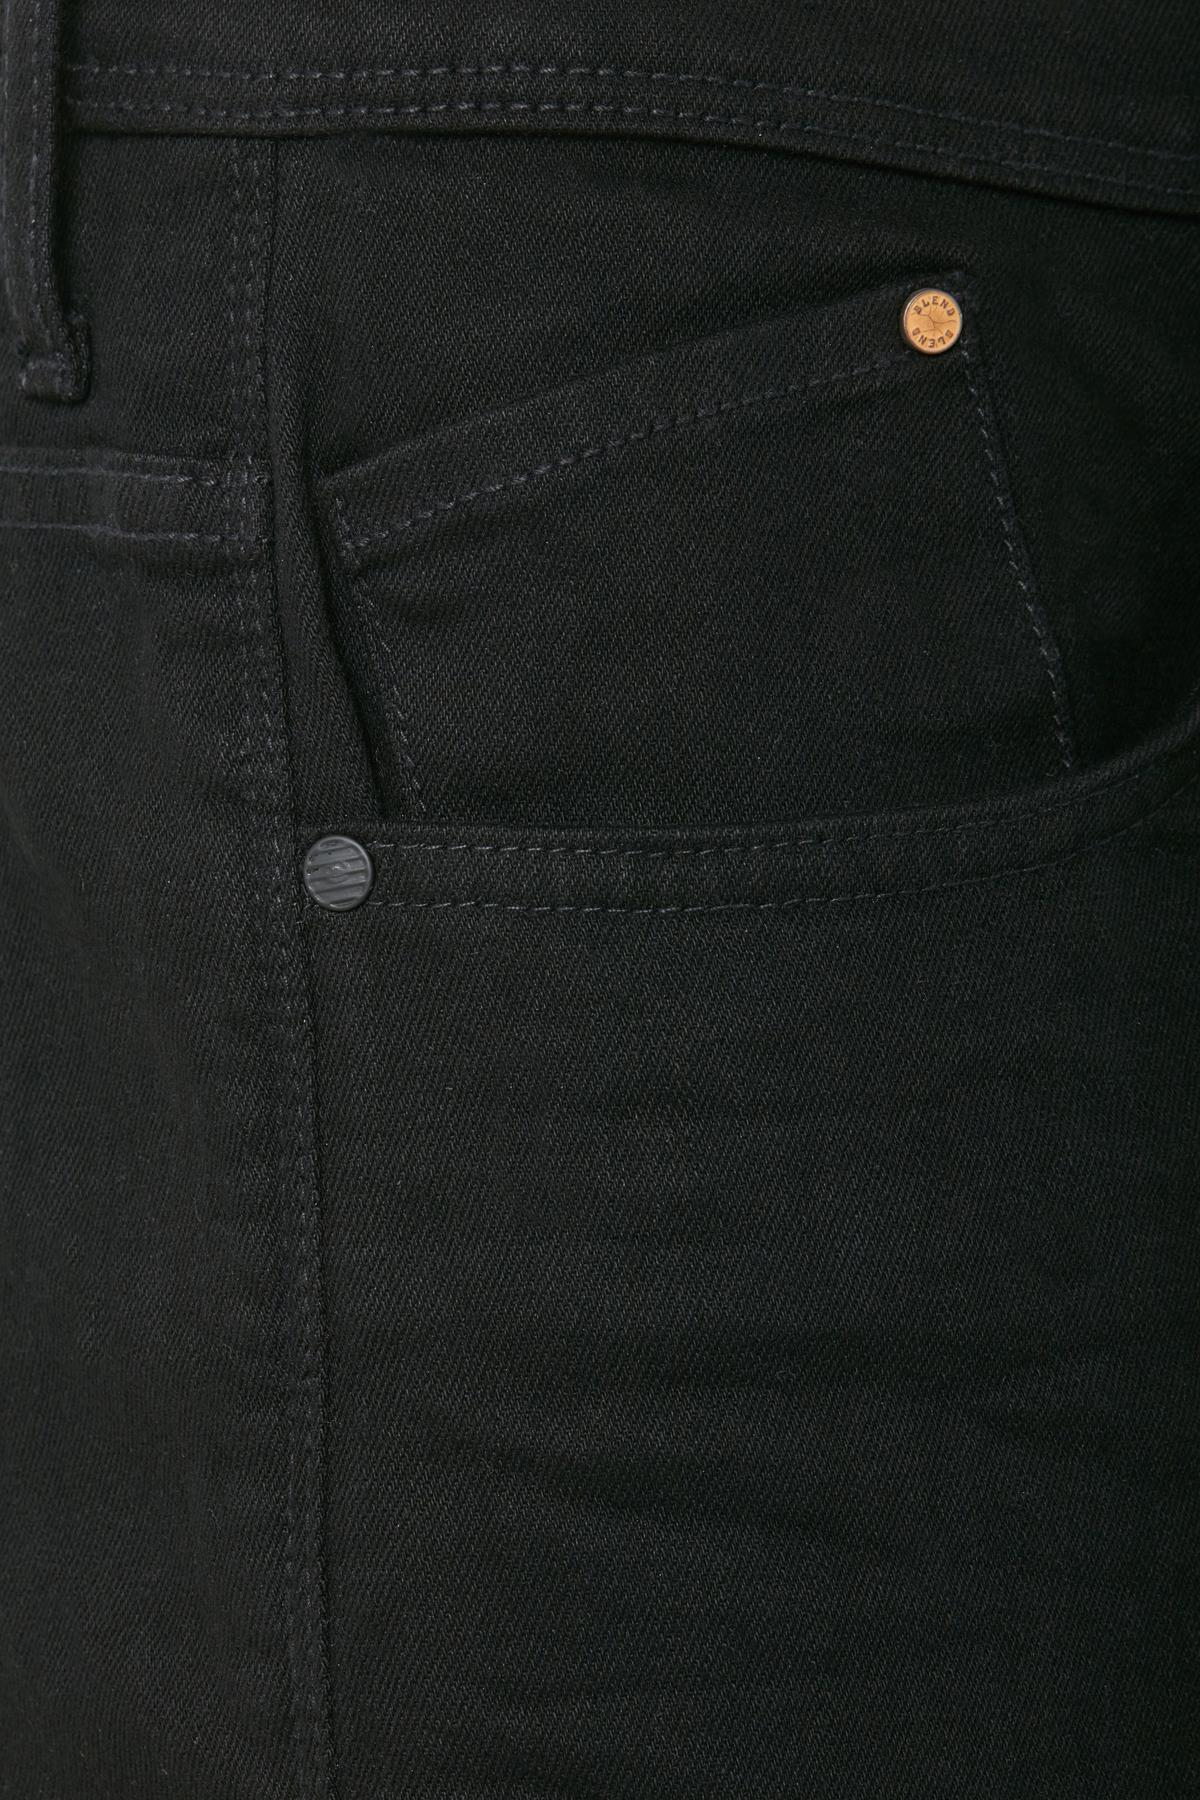 Denim Black Rock jeans – Køb Denim Black Rock jeans fra str. 33-36 her